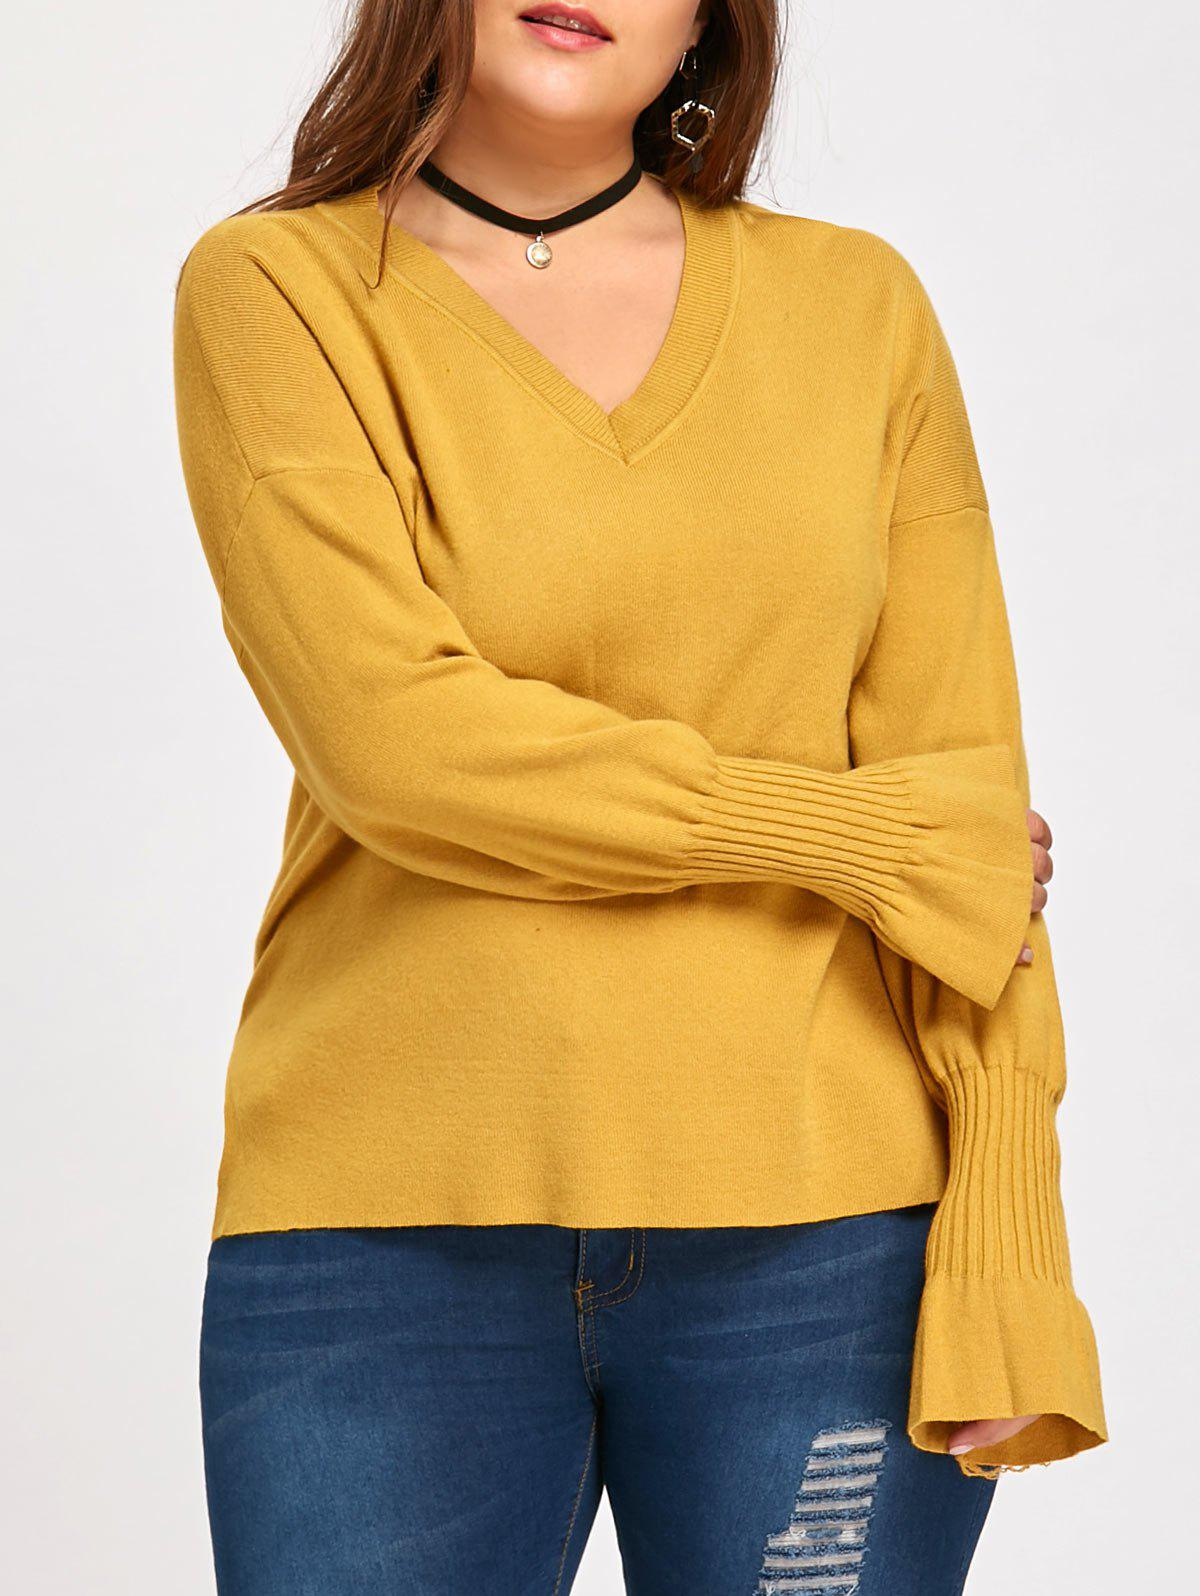 Flounce Plus Size Lantern Sleeve V Neck SweaterWOMEN<br><br>Size: 3XL; Color: YELLOW; Type: Pullovers; Material: Cotton,Polyester; Sleeve Length: Full; Collar: V-Neck; Style: Fashion; Season: Fall,Winter; Pattern Type: Solid; Weight: 0.4600kg; Package Contents: 1 x Sweater;